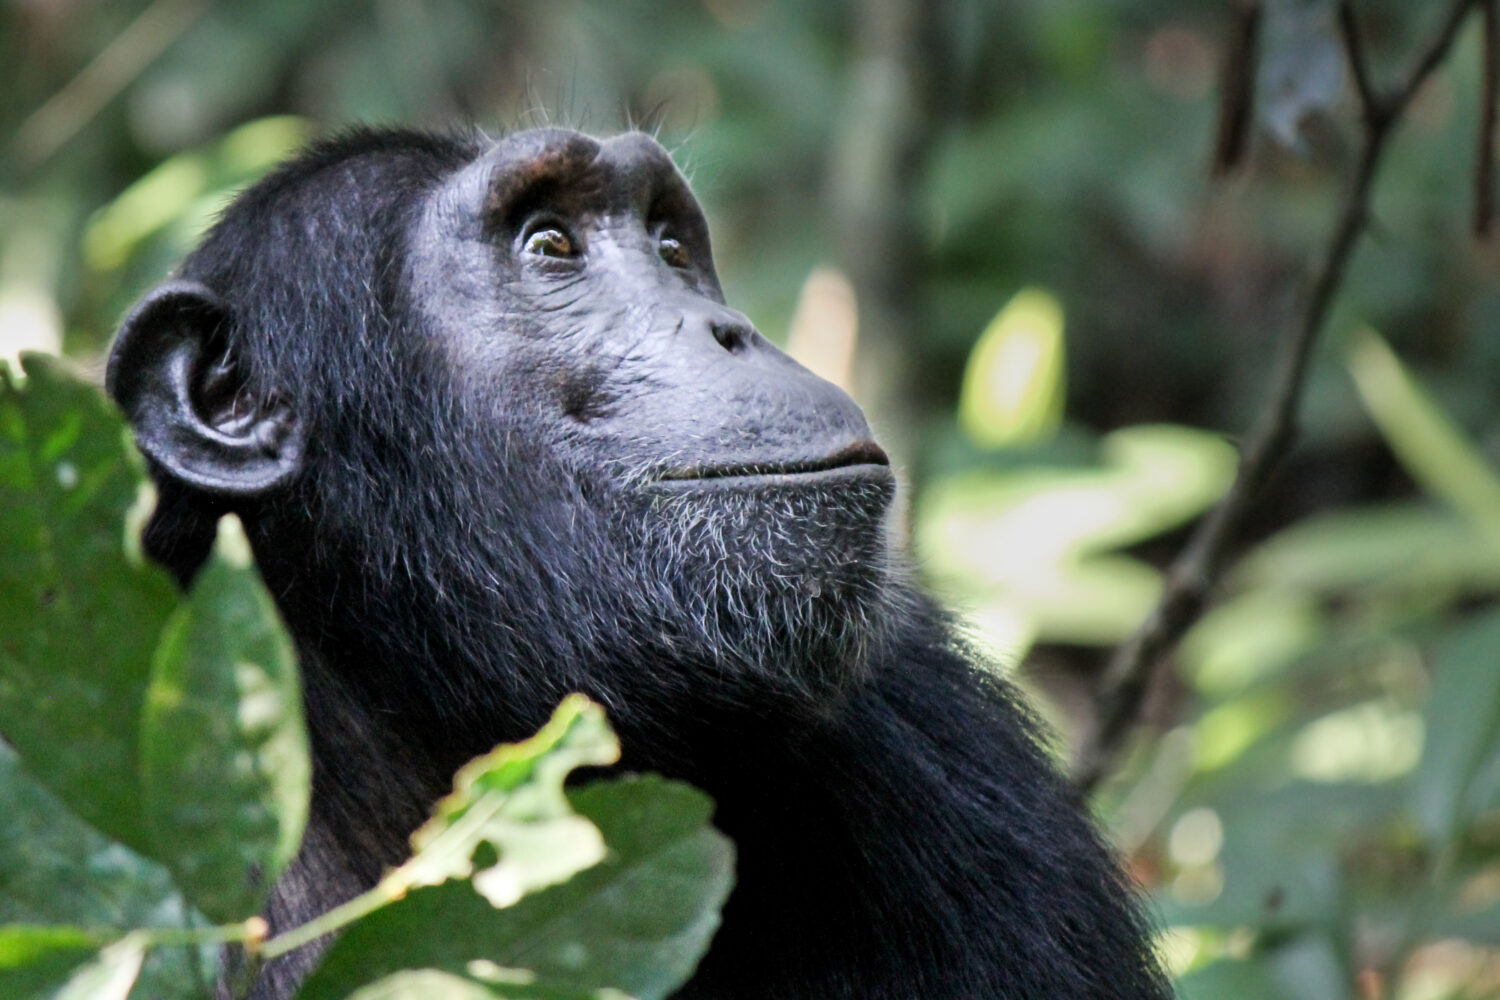 A wild chimpanzee is photographed in profile. It loos up and to the left, green leaves frame its face.